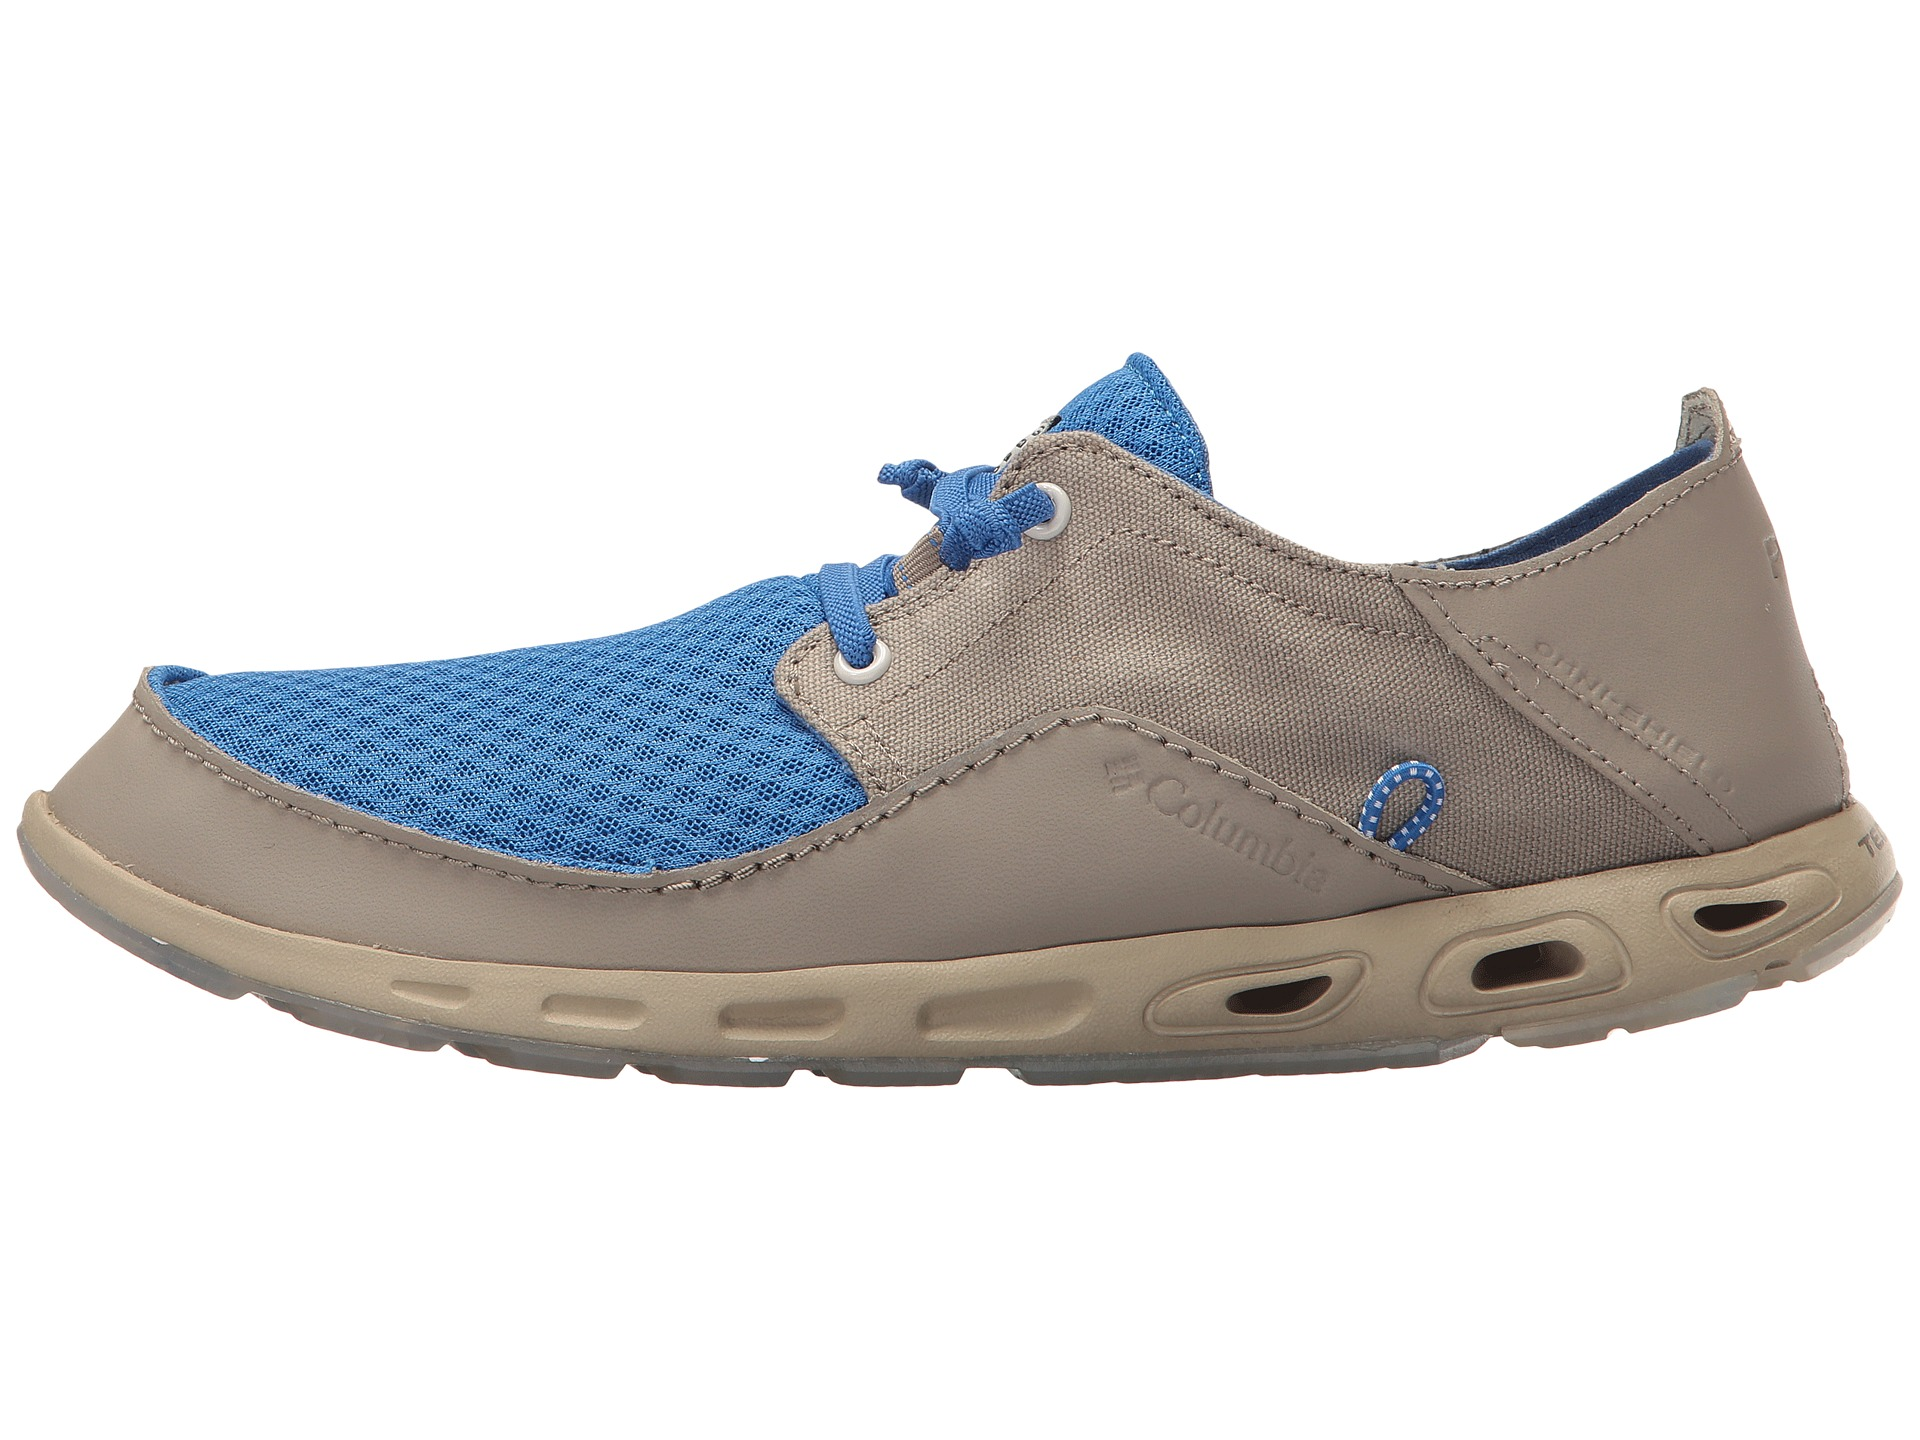 Men S Bahama Vent Relaxed Pfg Shoe Size